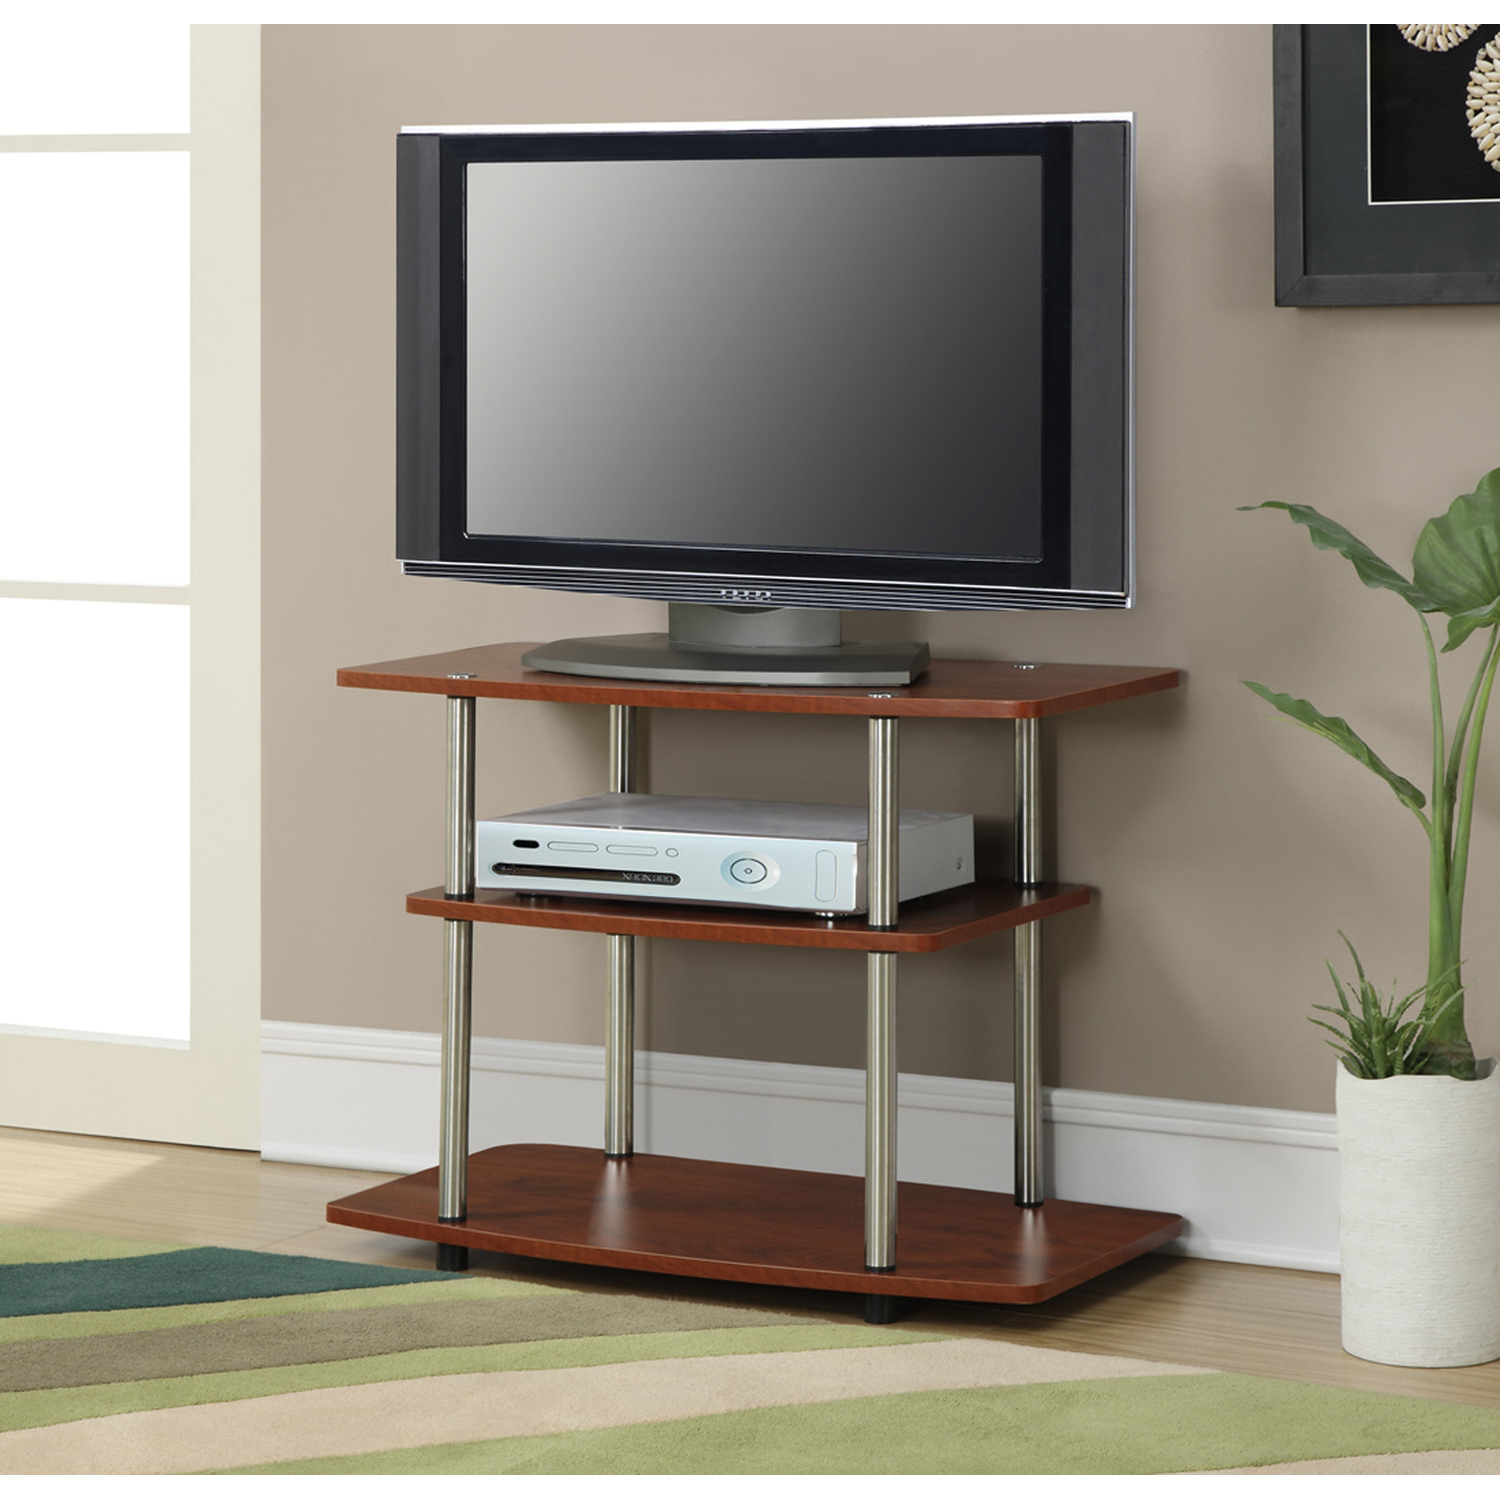 Tv Stands For Tube Tvs With Recent Tv Stands (View 20 of 20)